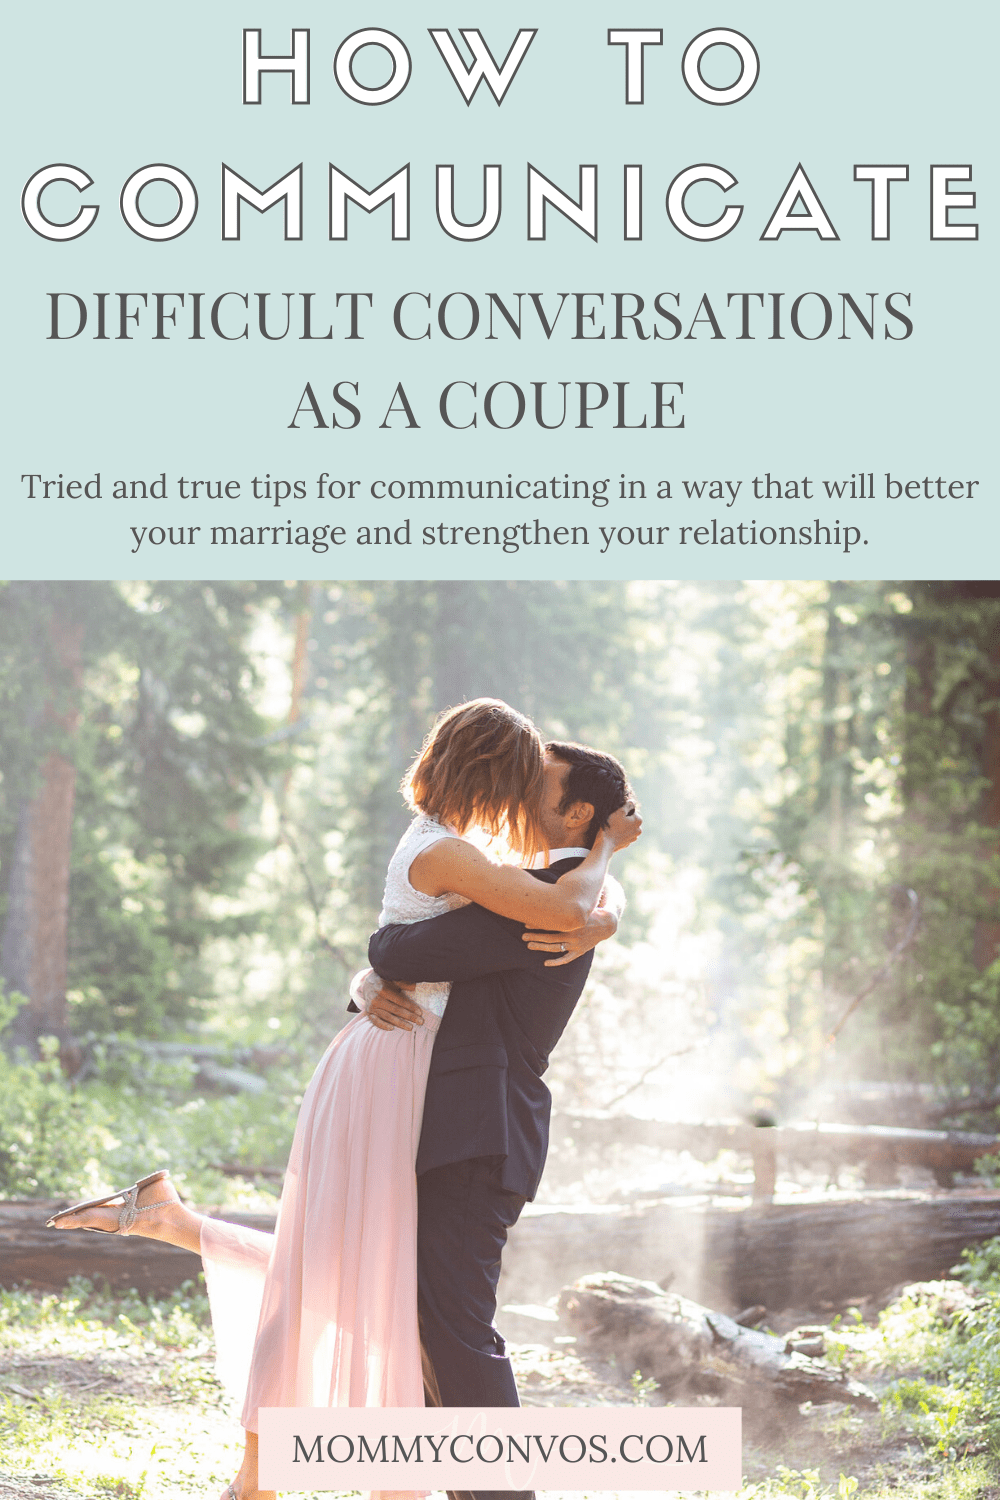 how to communicate as a couple, communicating as a couple, communication tips and tricks, communicating with my husband, communicating with my wife, how to communicate, talk it out, conflict resolution, healthy marriage tips, how to have a healthy marriage